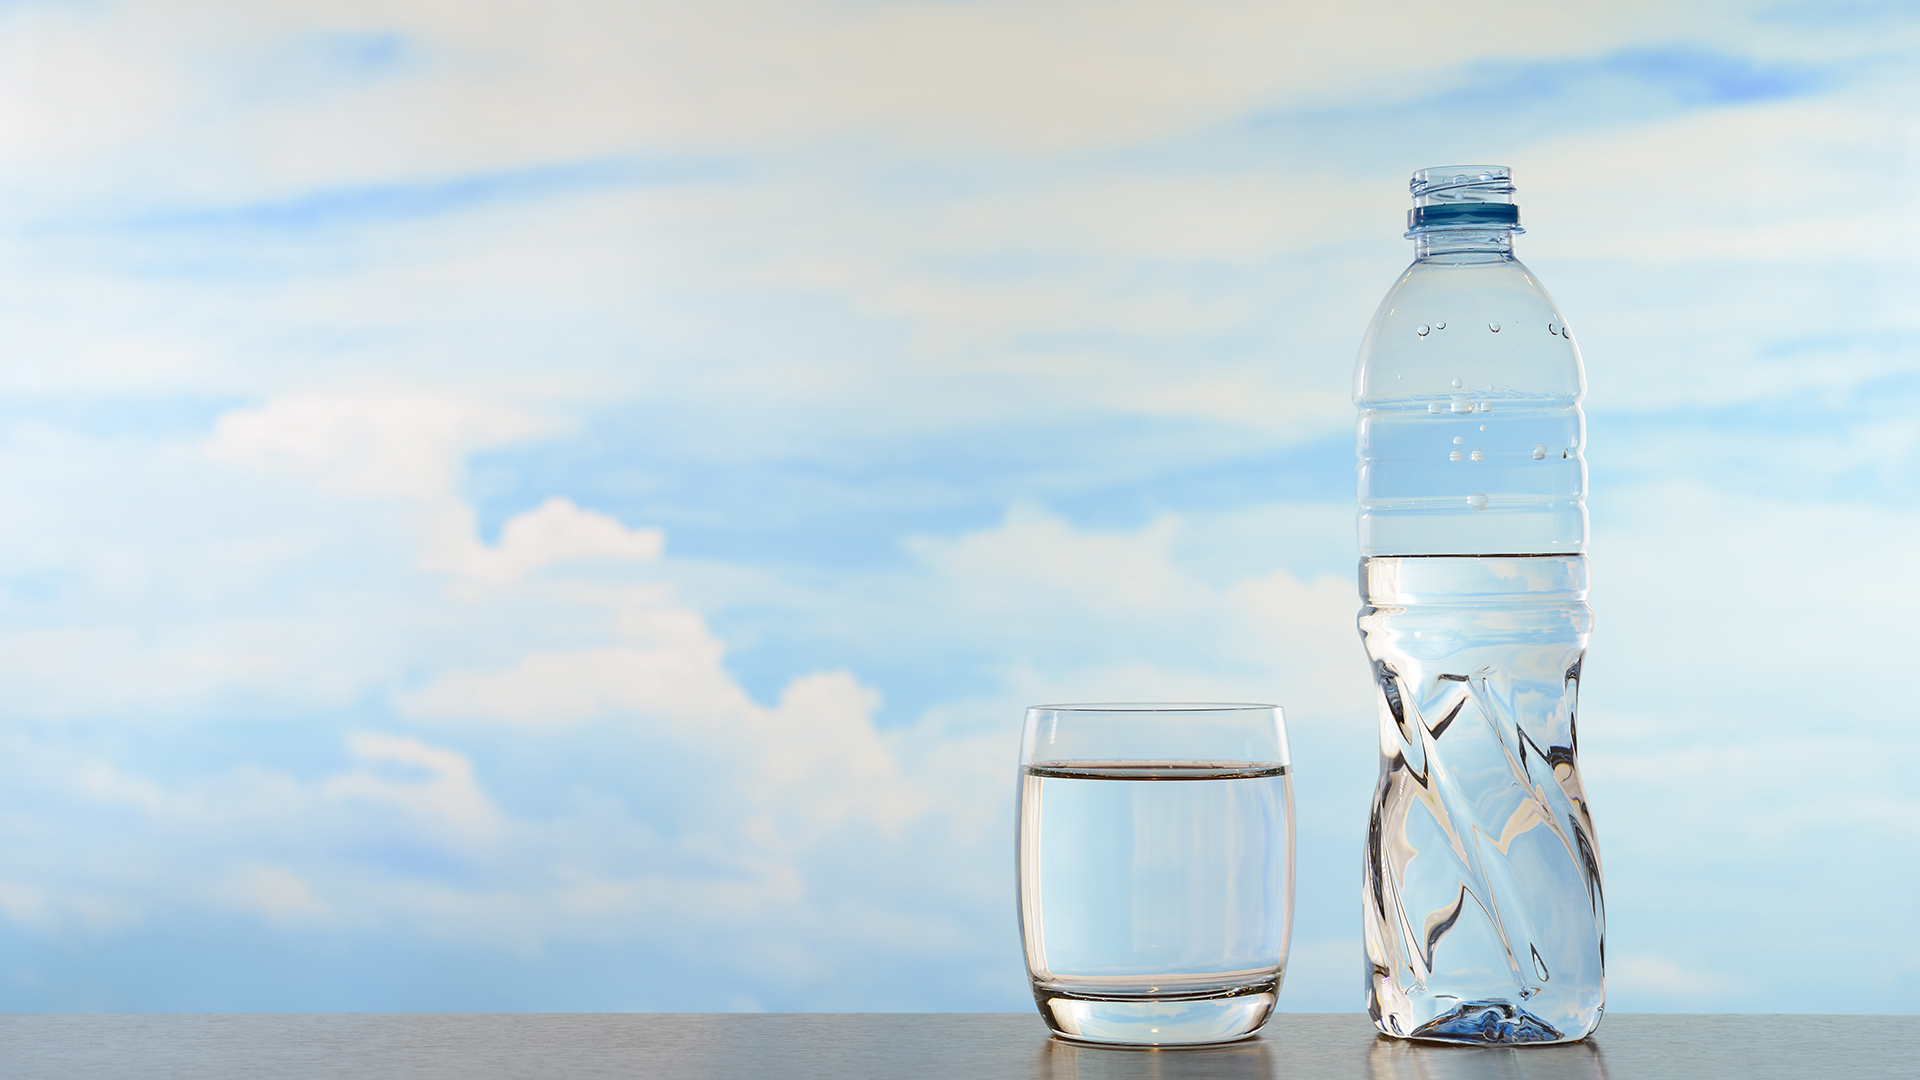 Fresh and clean drinking water in bottle and glass on sky background